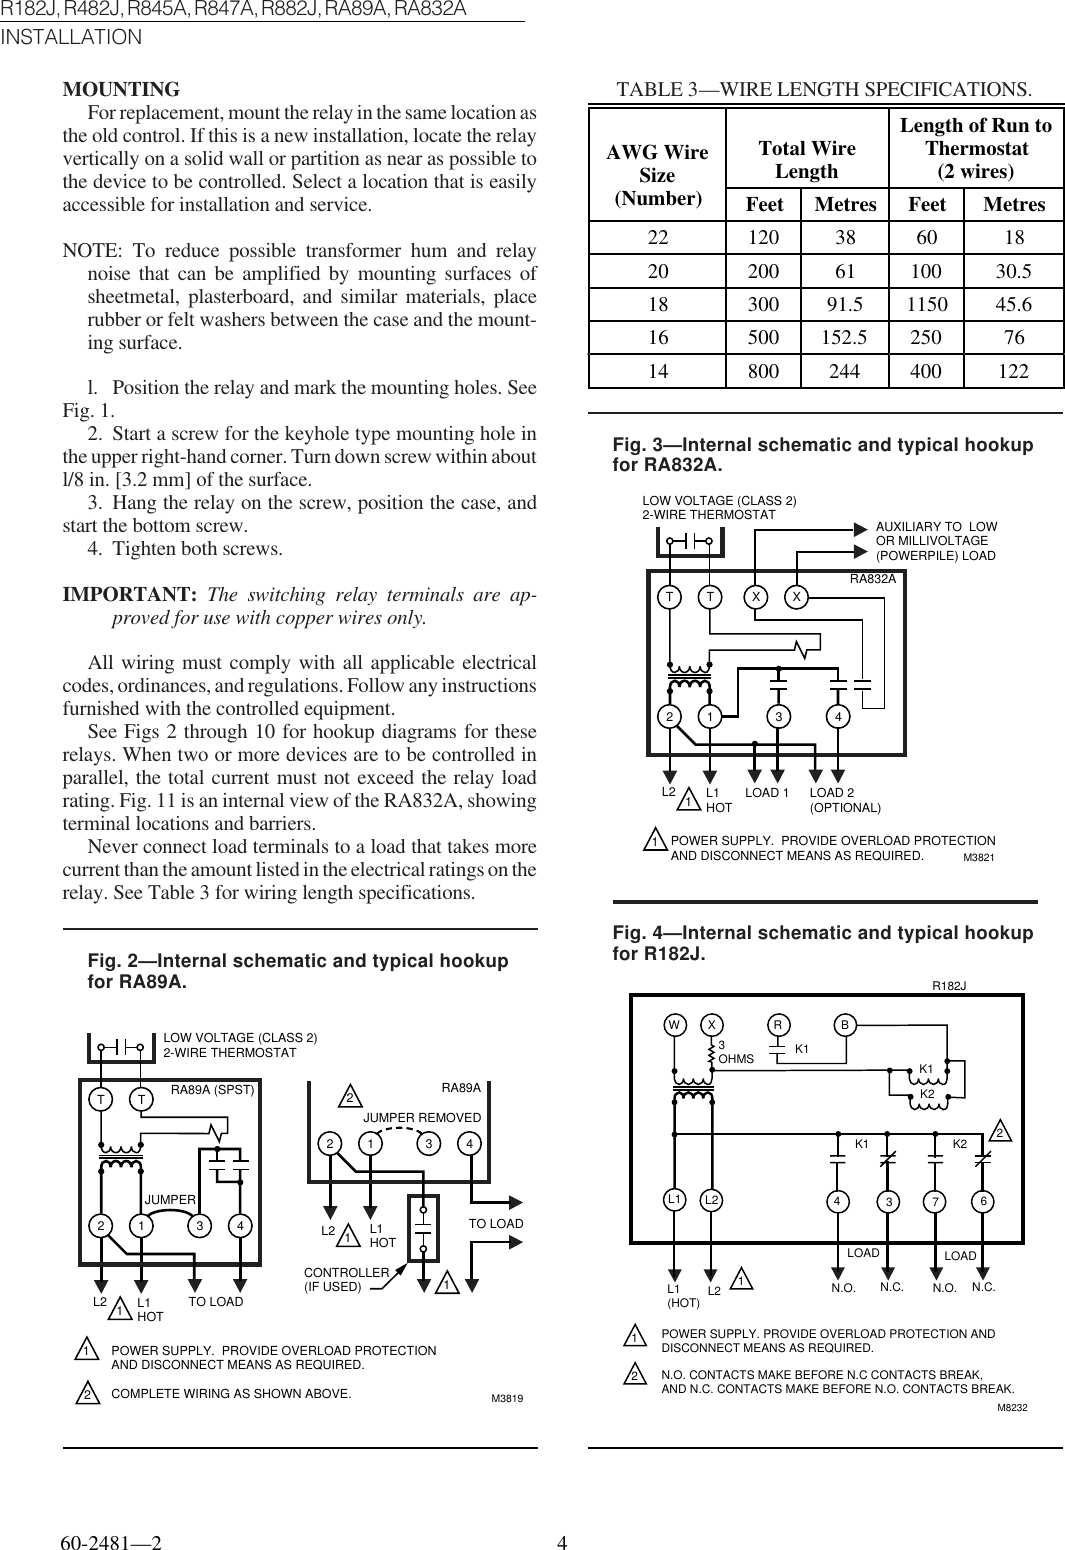 Honeywell Switch R182j Users Manual 60 2481 R482j R845a Wiring Diagram Page 4 Of 6